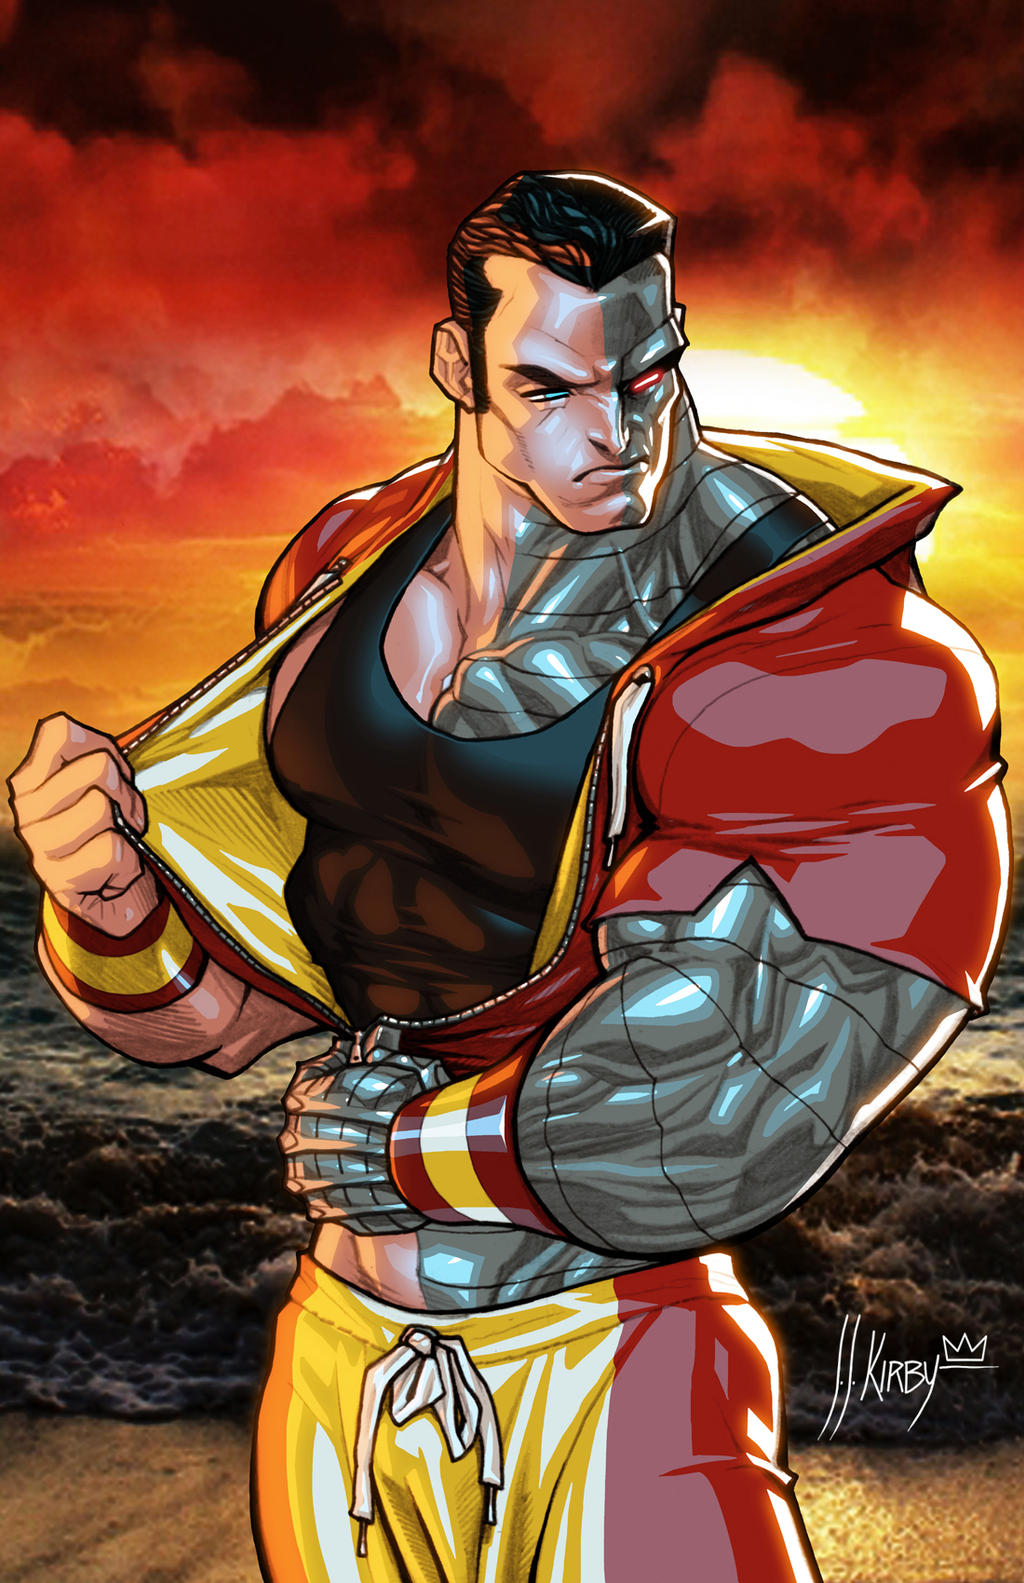 colossus marvel x men - photo #23